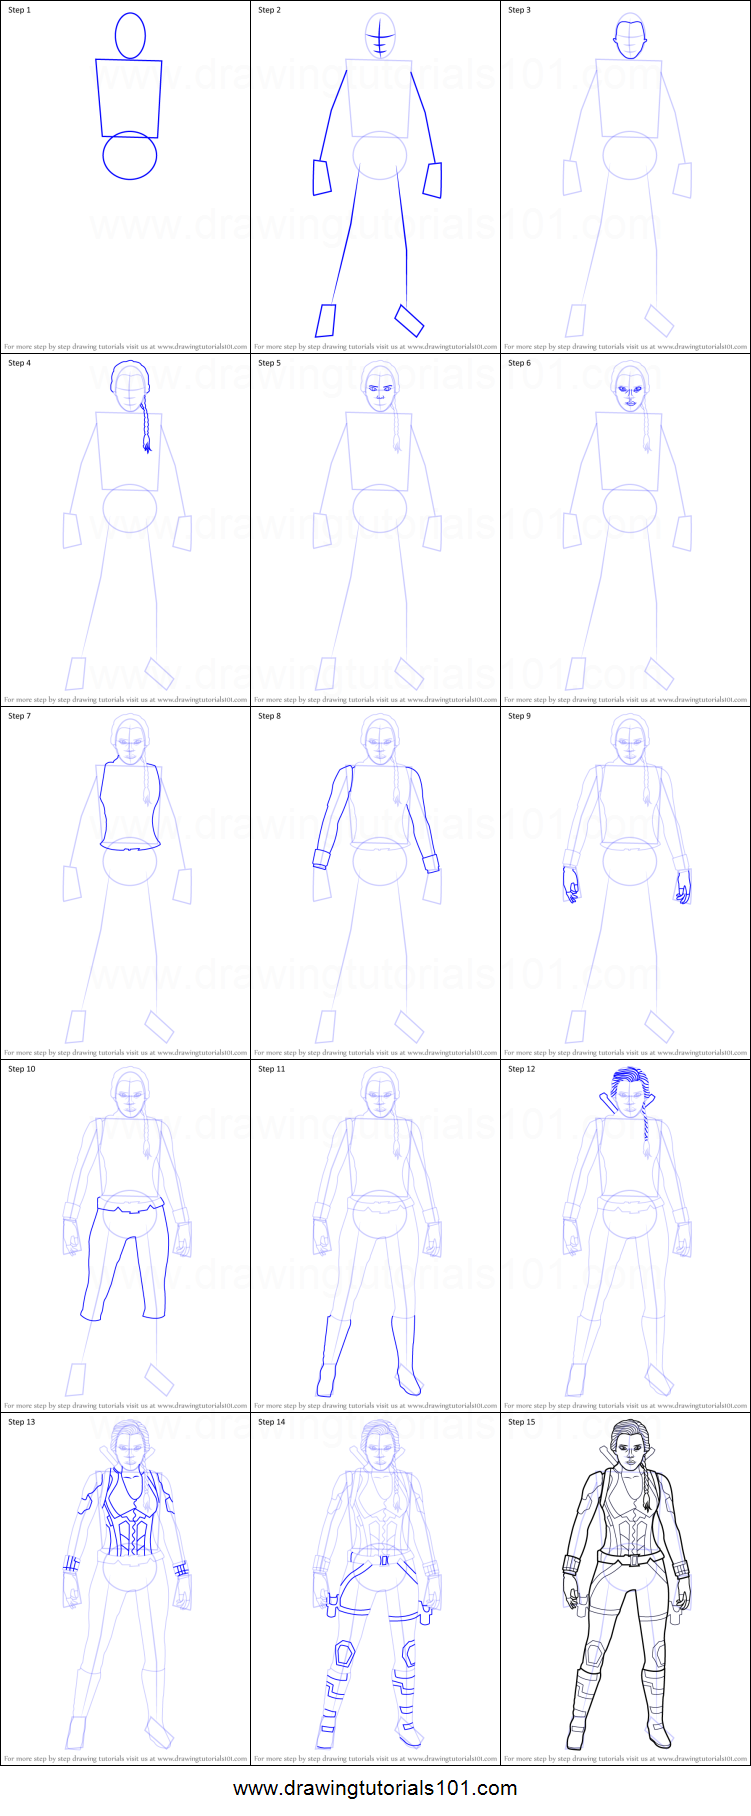 How To Draw Black Widow From Avengers Endgame Printable Step